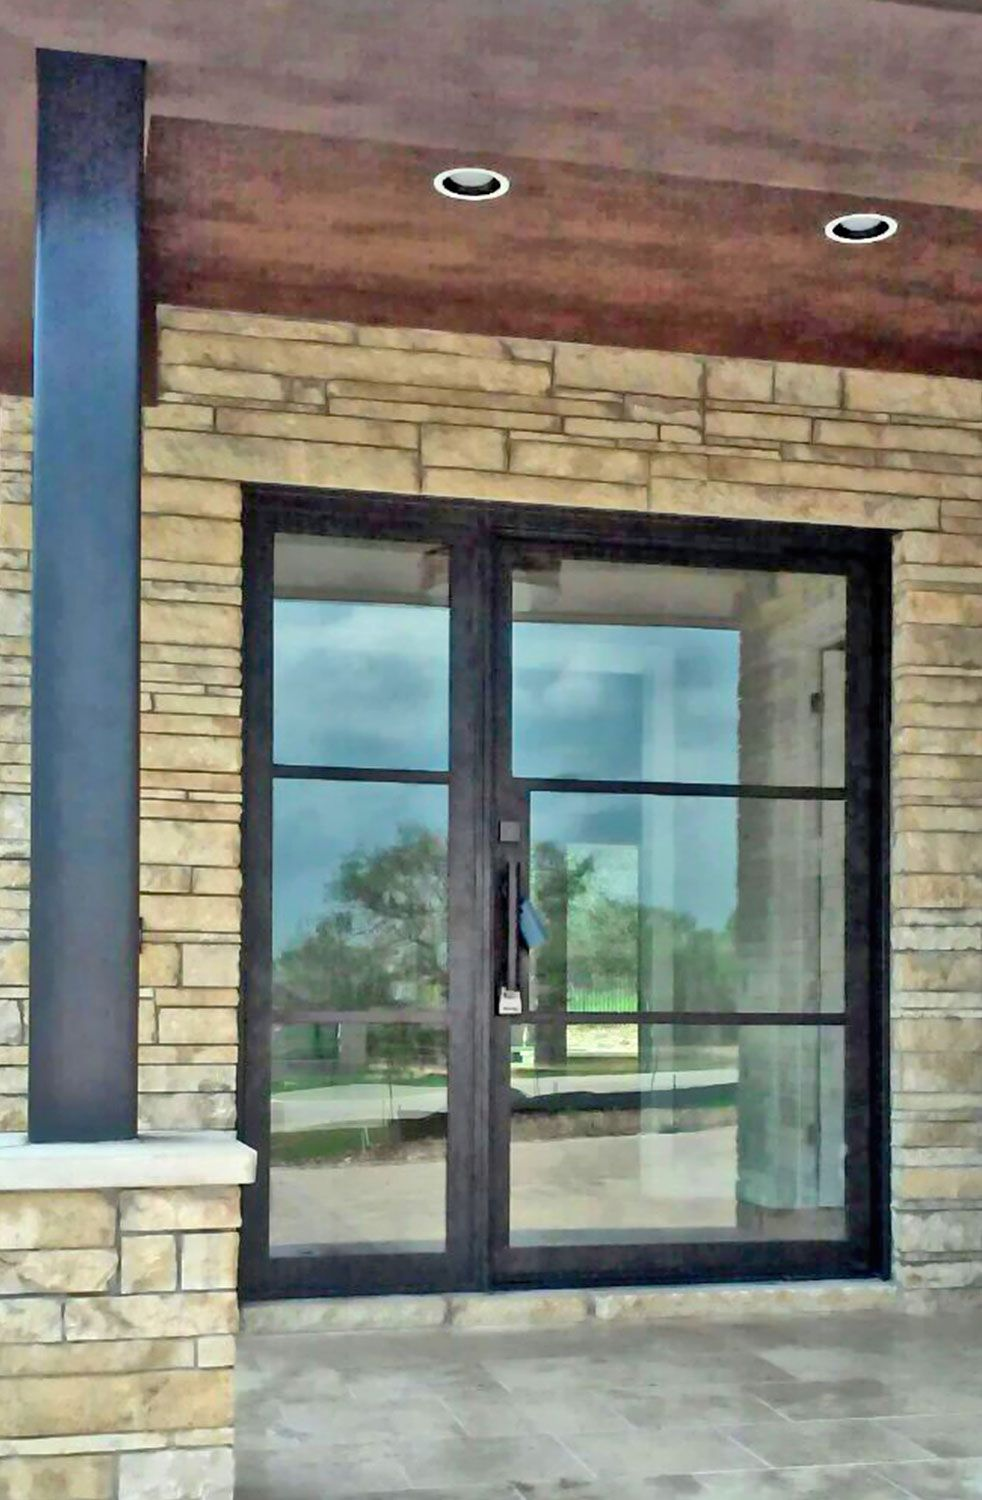 Luxury Line Steel Windows u0026 Doors Texas u0026 Florida - Cantera Doors & Luxury Line Steel Windows u0026 Doors Texas u0026 Florida - Cantera Doors ... pezcame.com